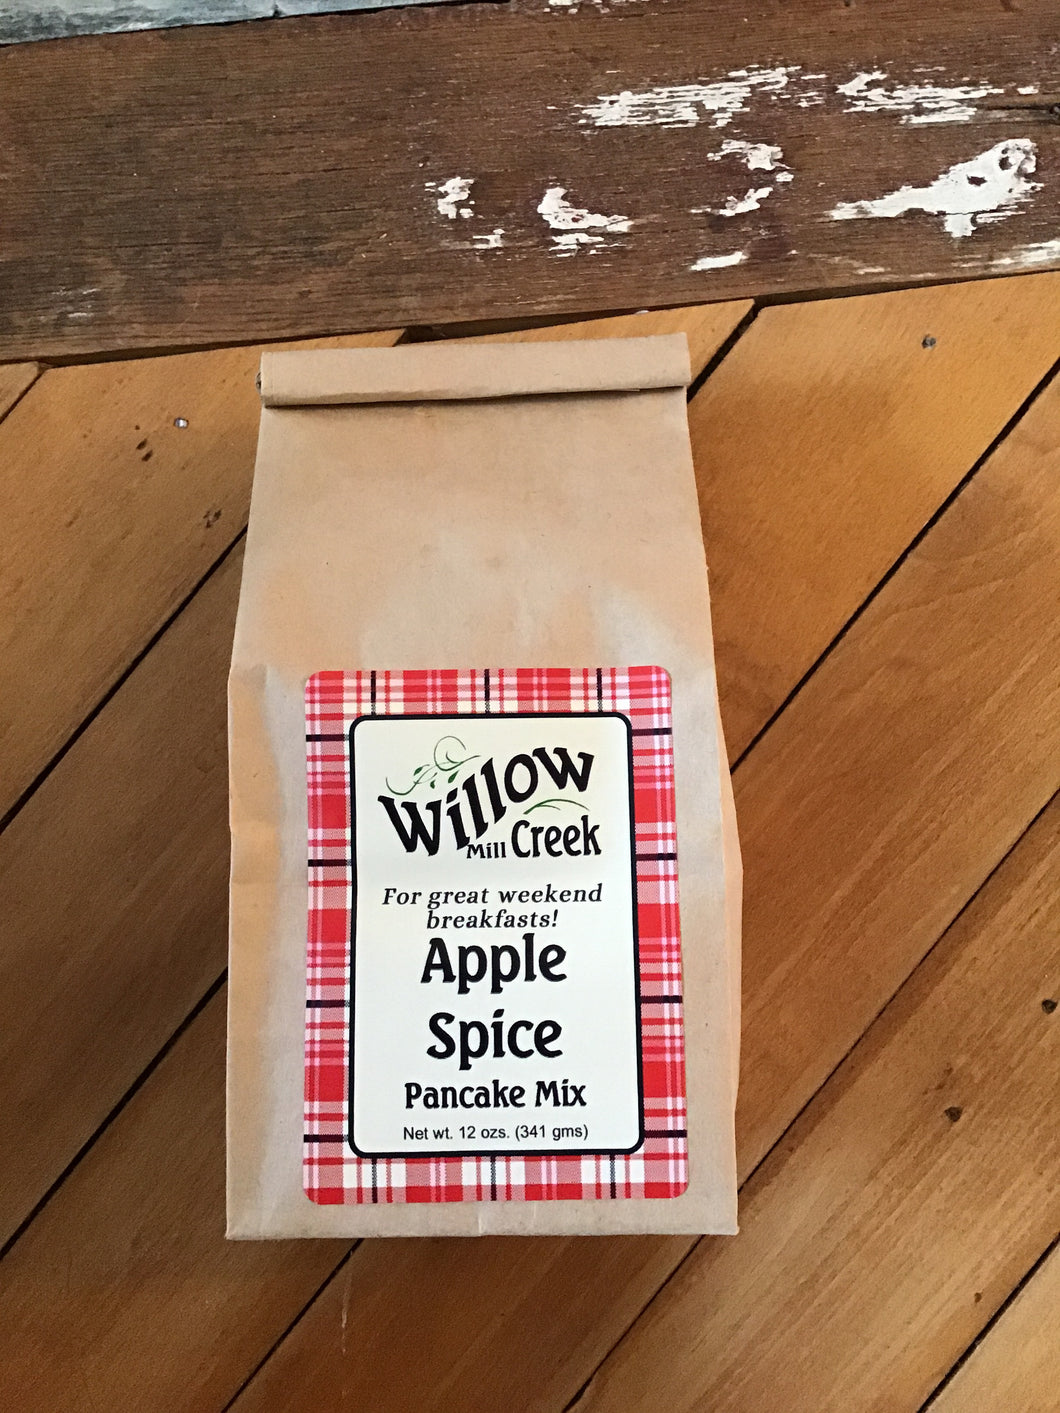 Apple Spice Pancake Mix